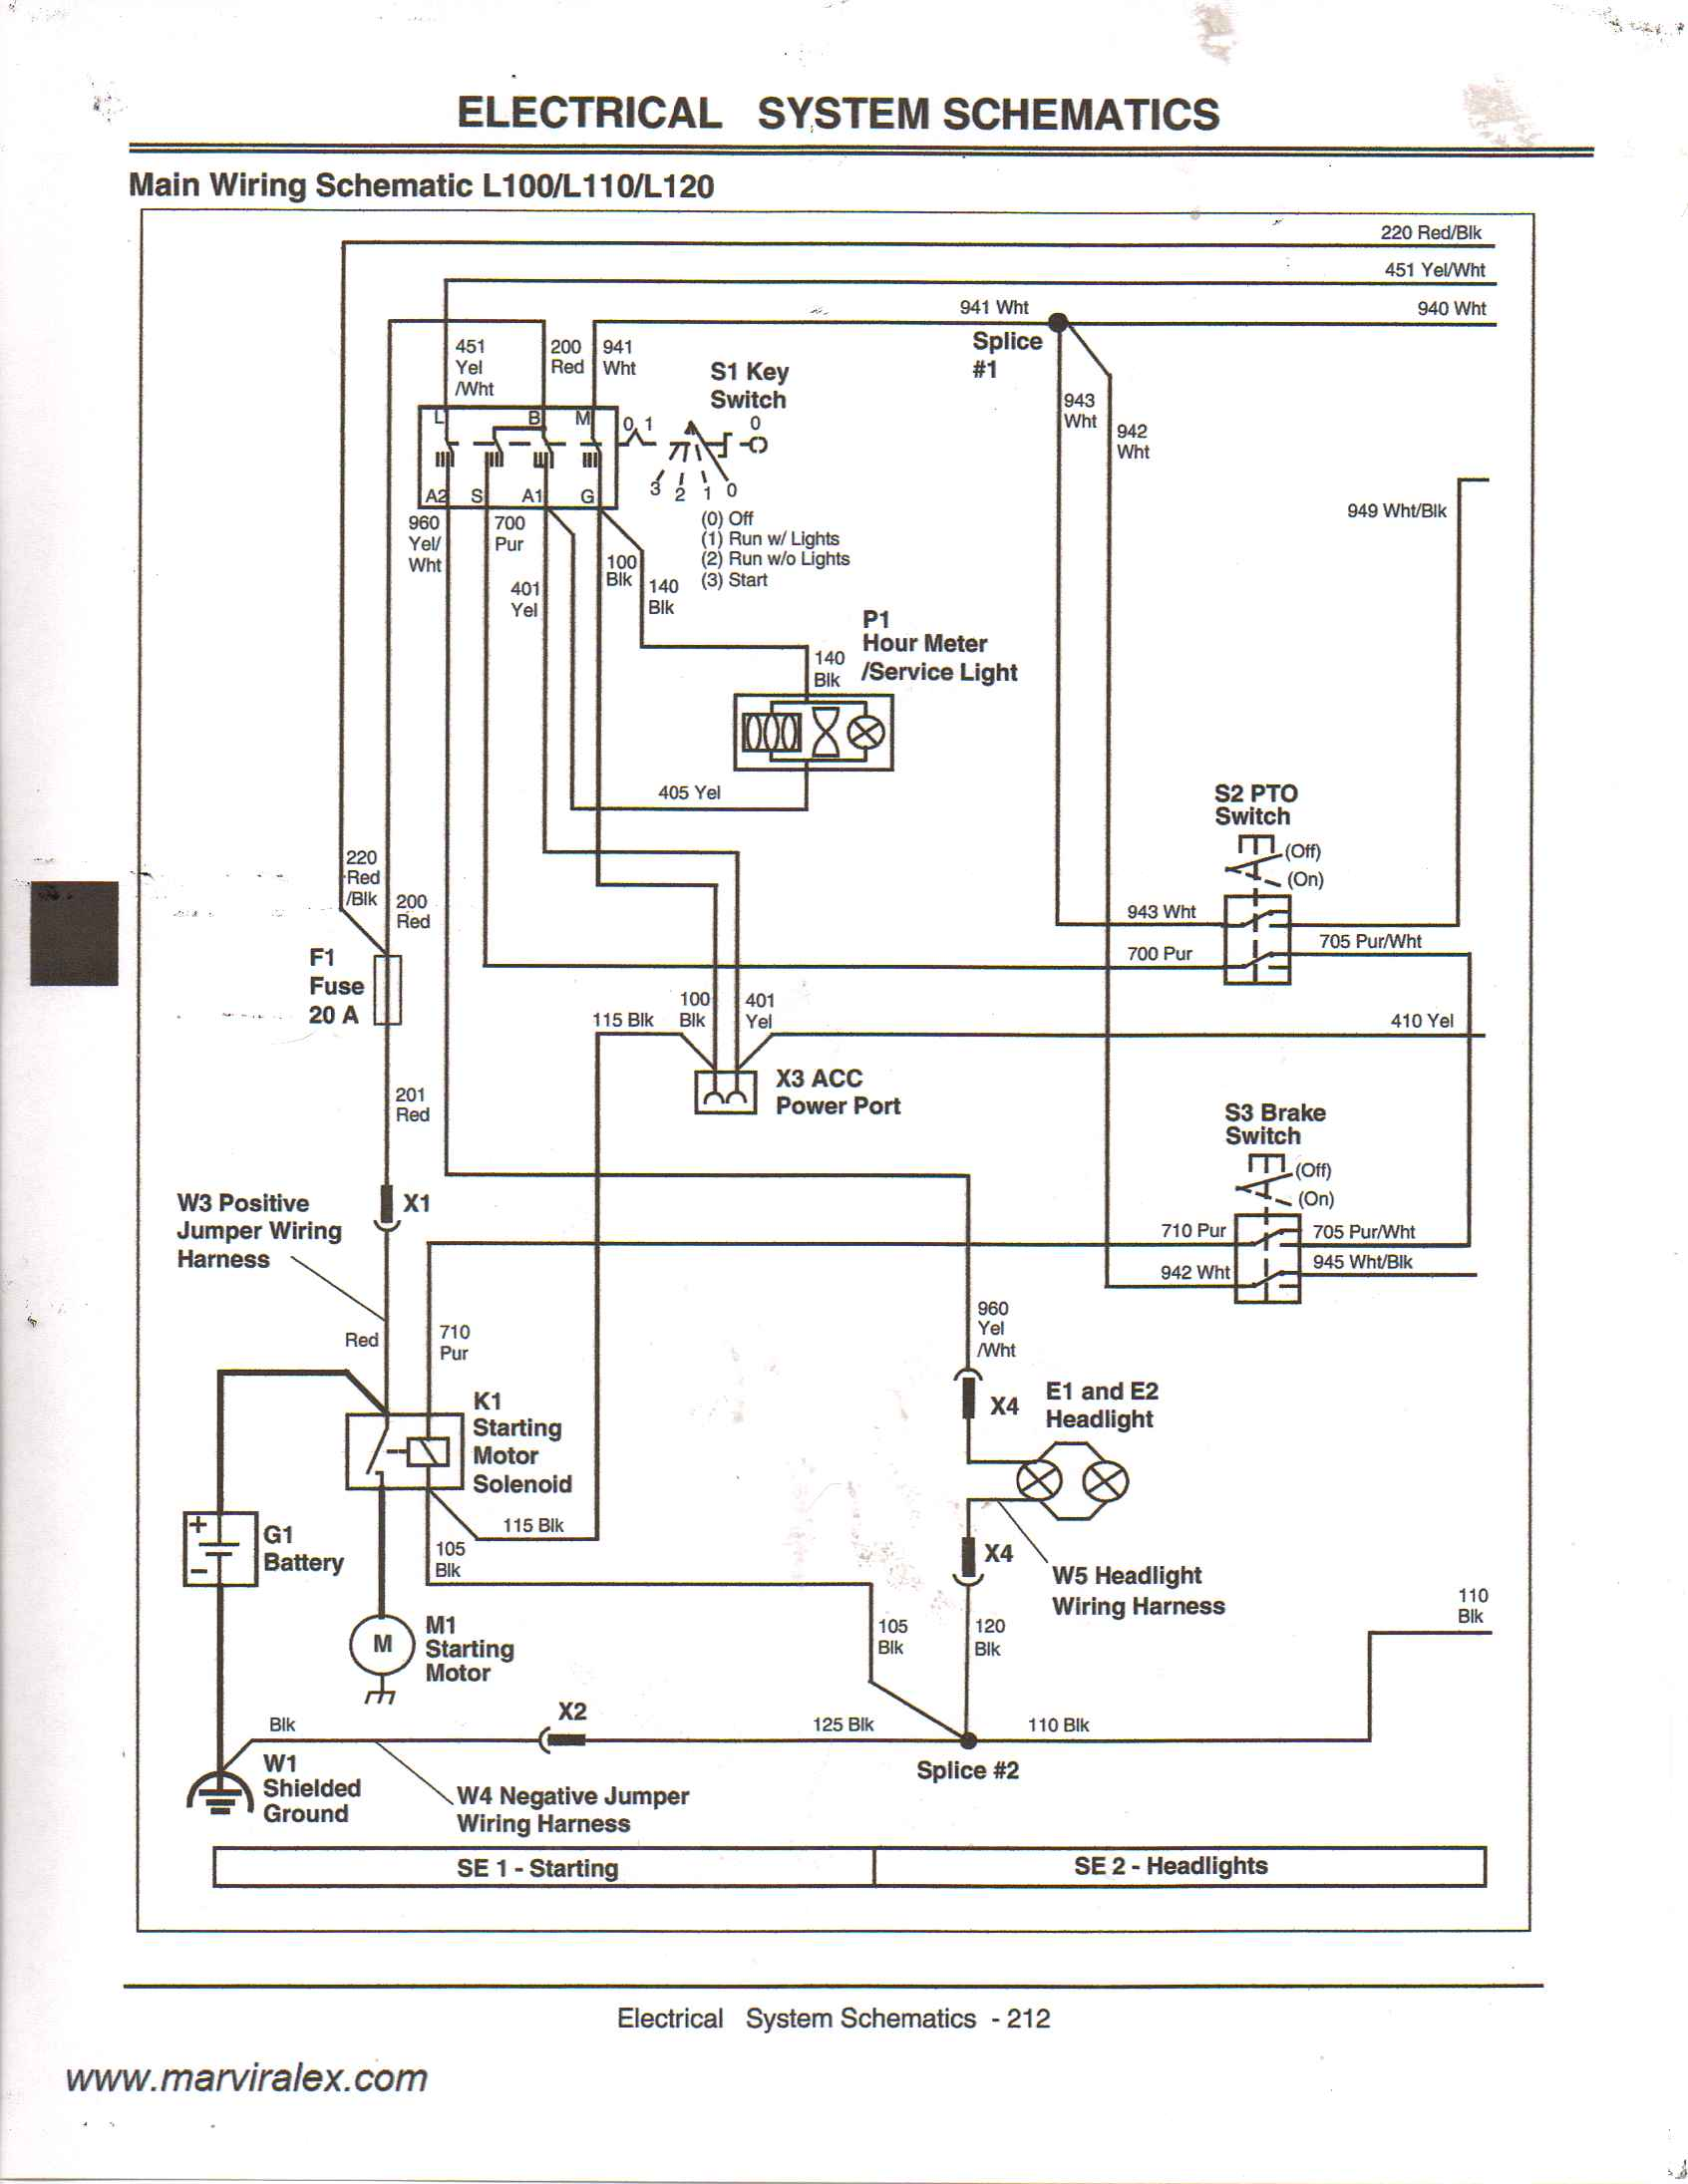 Kohler 23 Hp L130 Wiring Diagram Will Be A Thing 1 2 Engine Harness The Pto Clutch On My Seized And Tore Wires From Plug I Rh Justanswer Com Charging